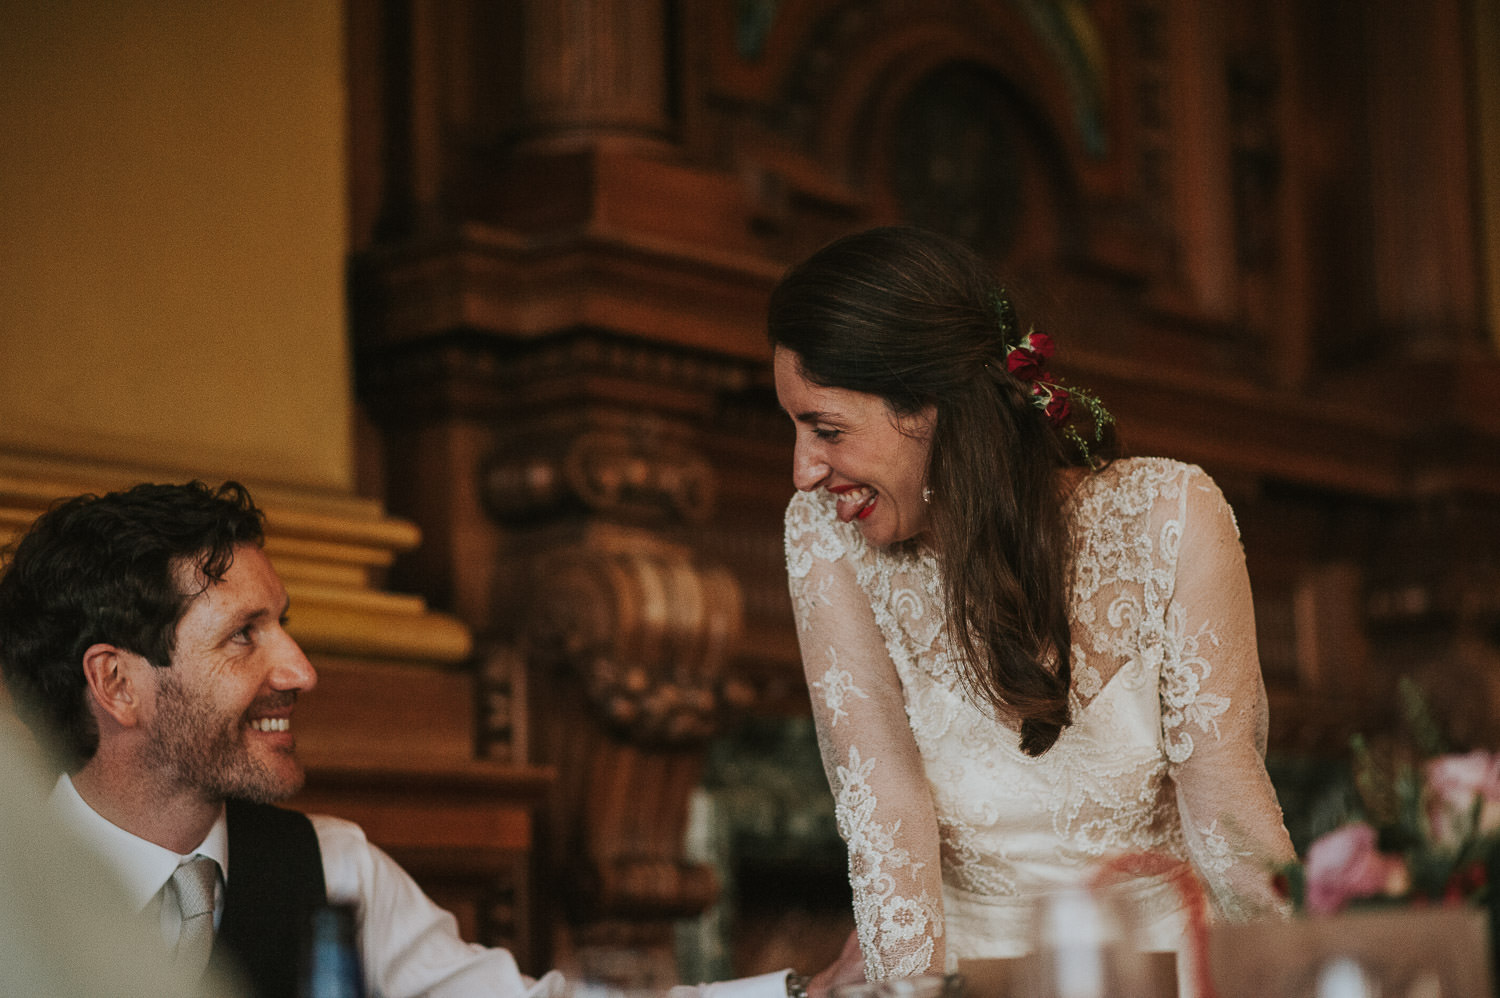 bride and groom smiling at each other during speeches